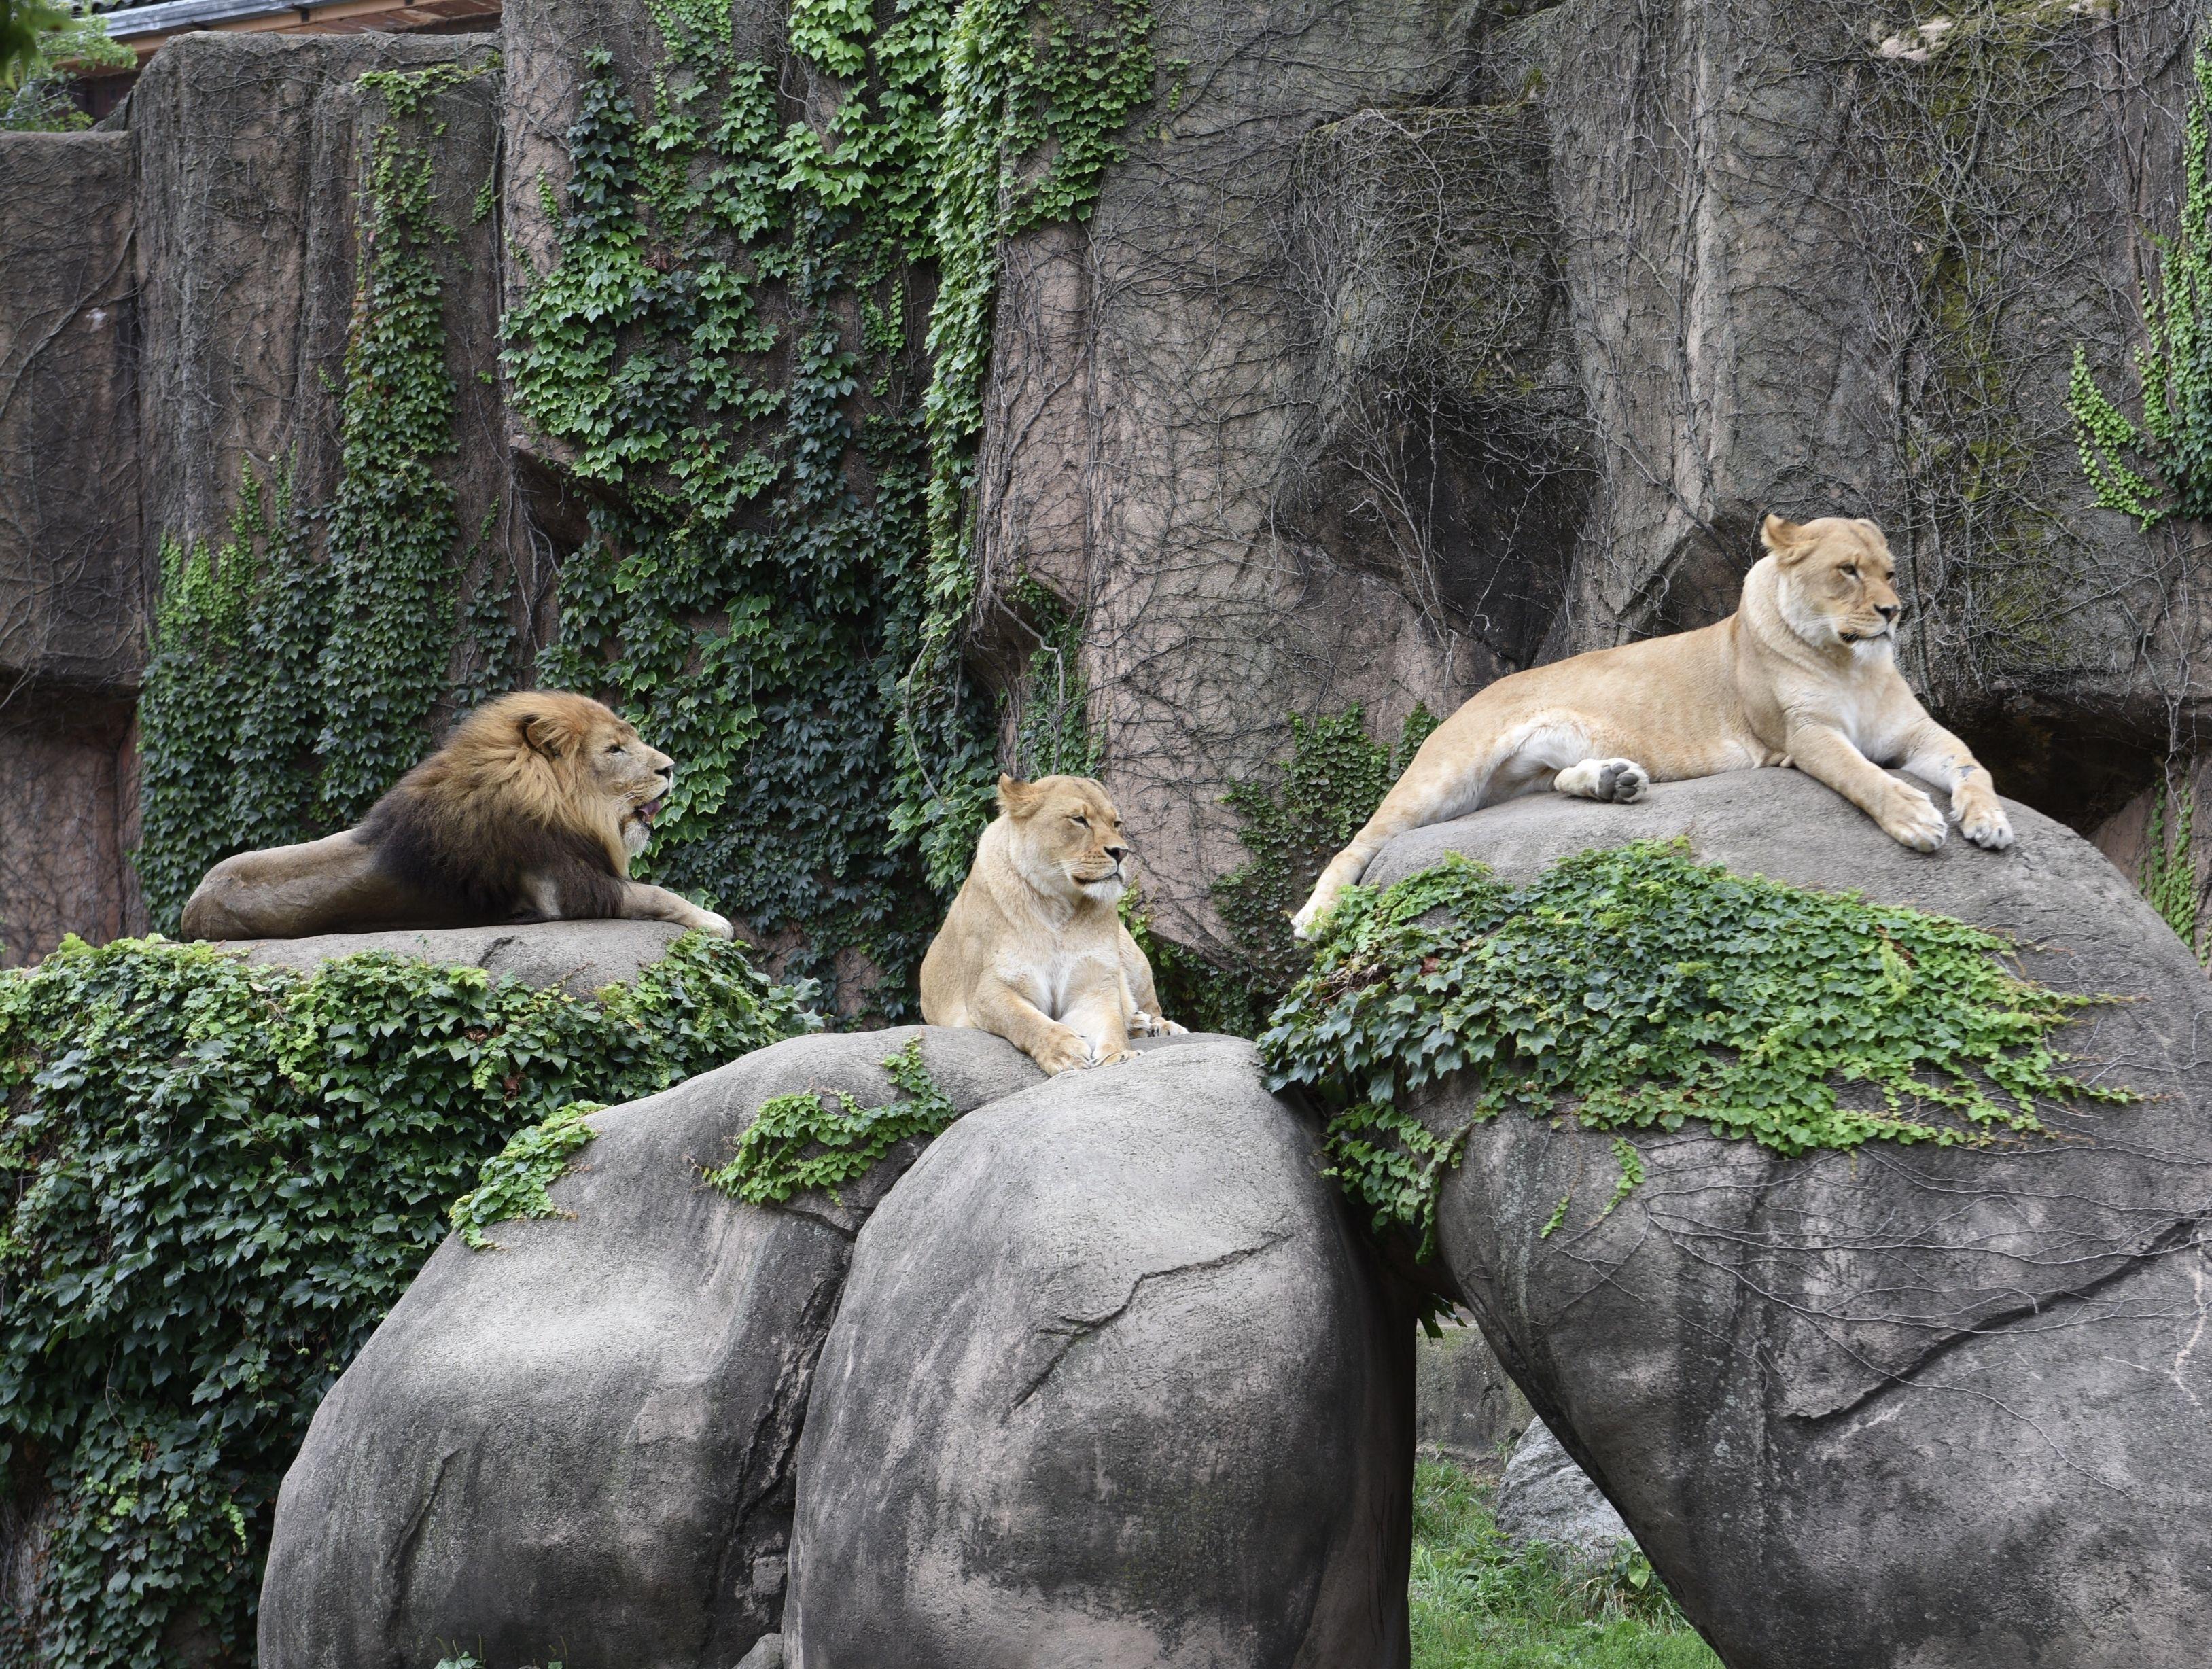 The 10 Best Zoos in the US Detroit zoo, St louis zoo